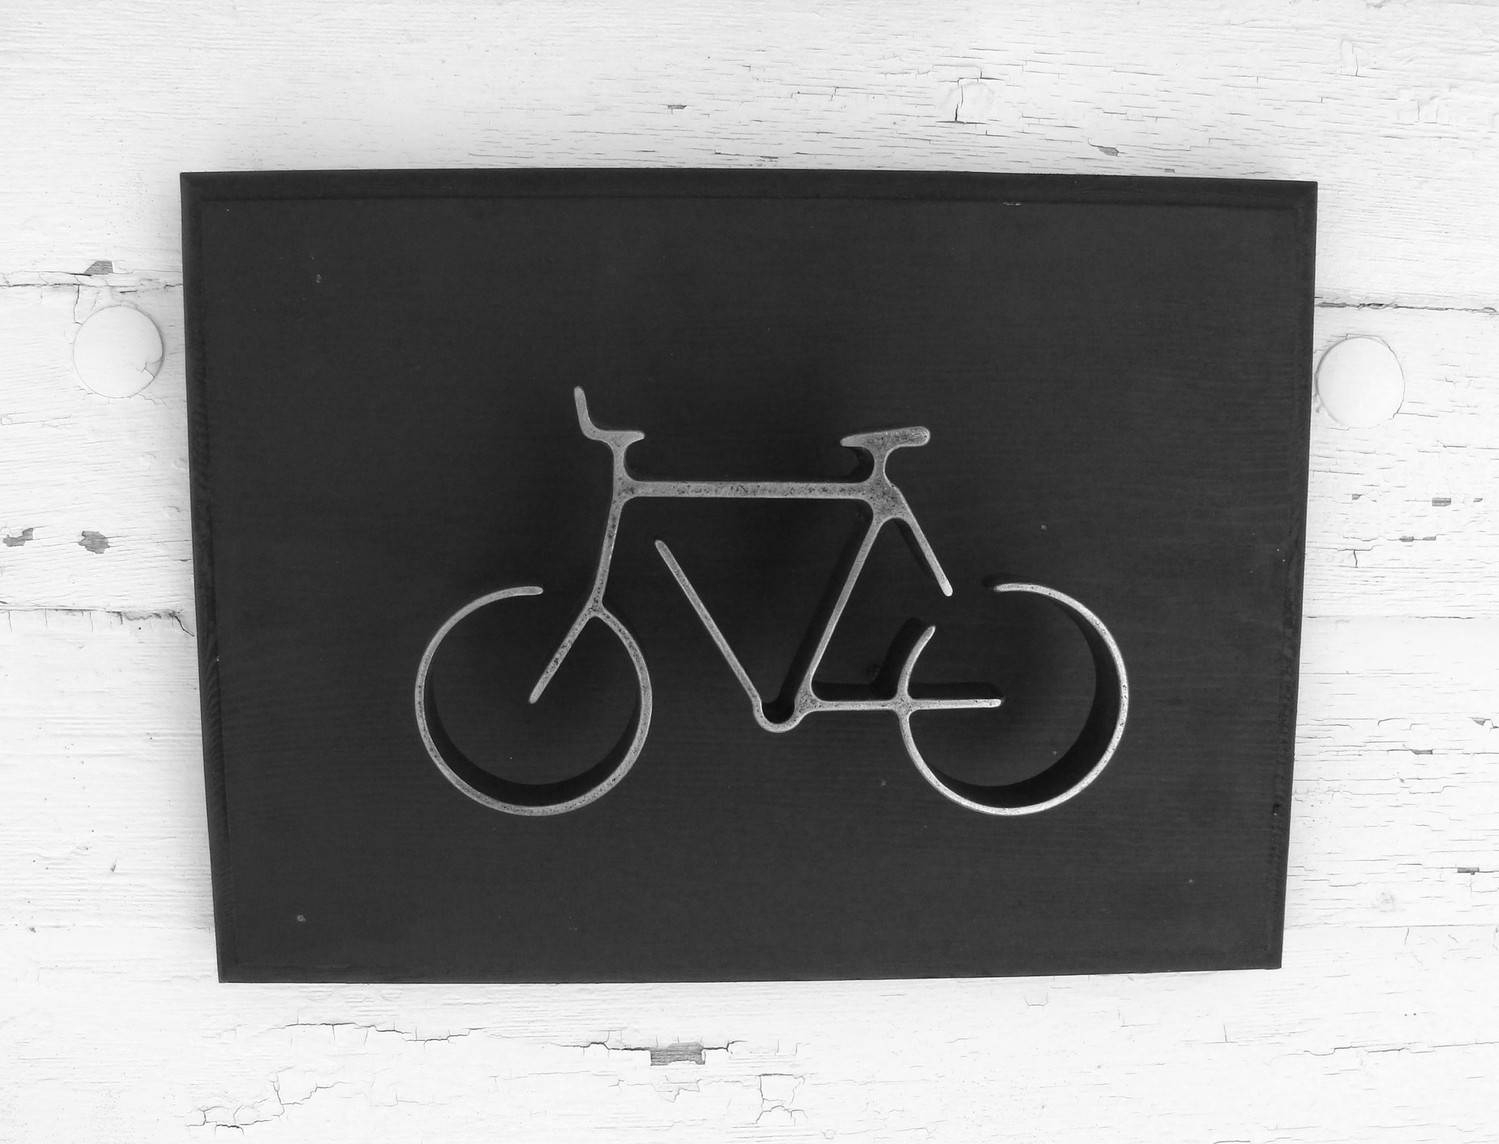 Metal Bike Wall Art Sign Bicycle Wall Hanging Home Or Office Intended For 2017 Cycling Wall Art (View 16 of 25)